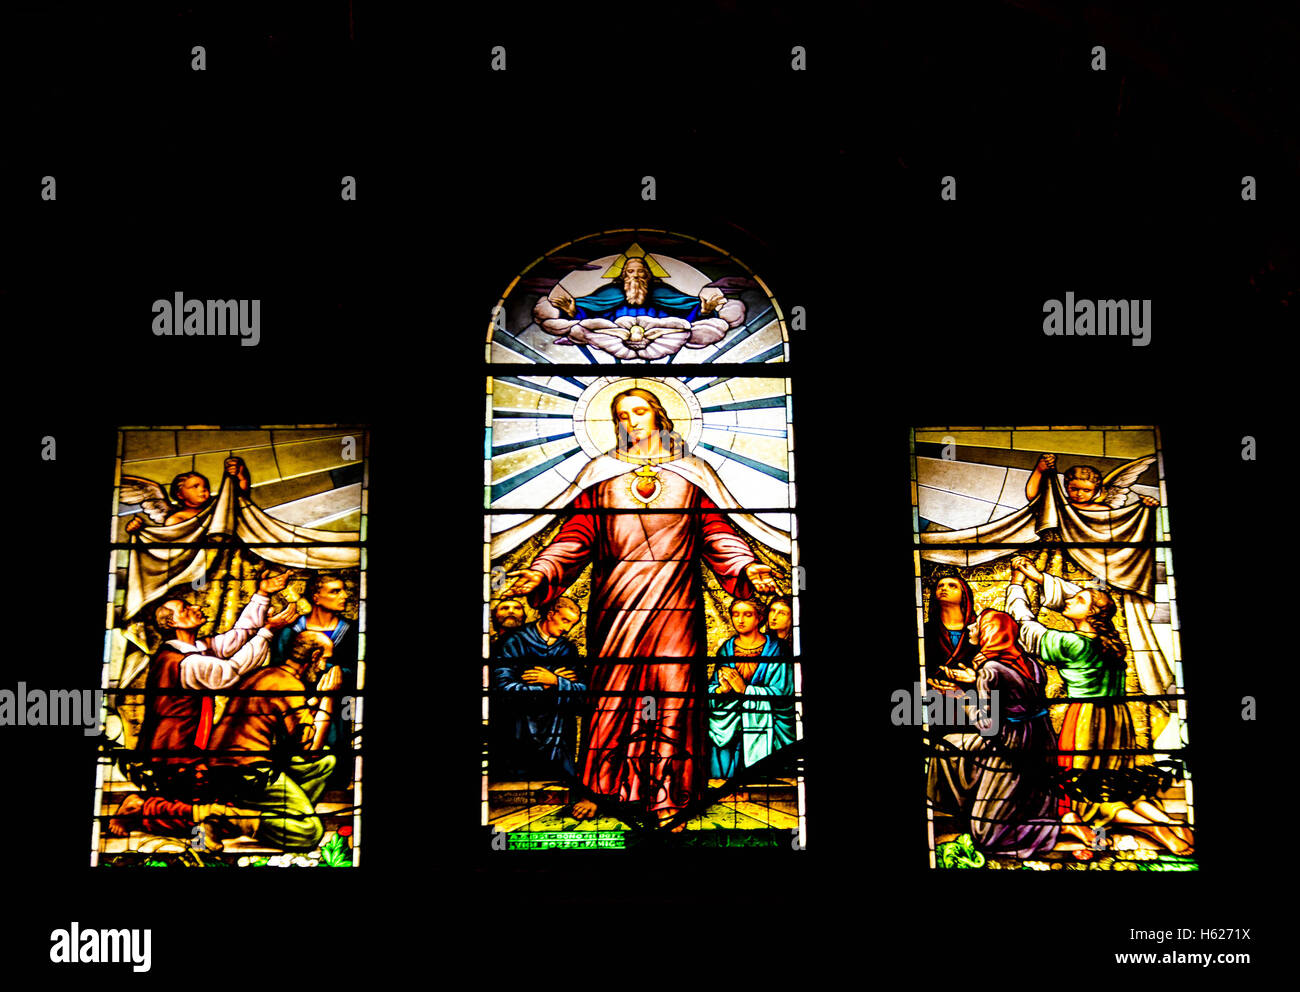 Stained glass window in the Basilica di Santa Margherita Italy depicting Jesus preaching Stock Photo